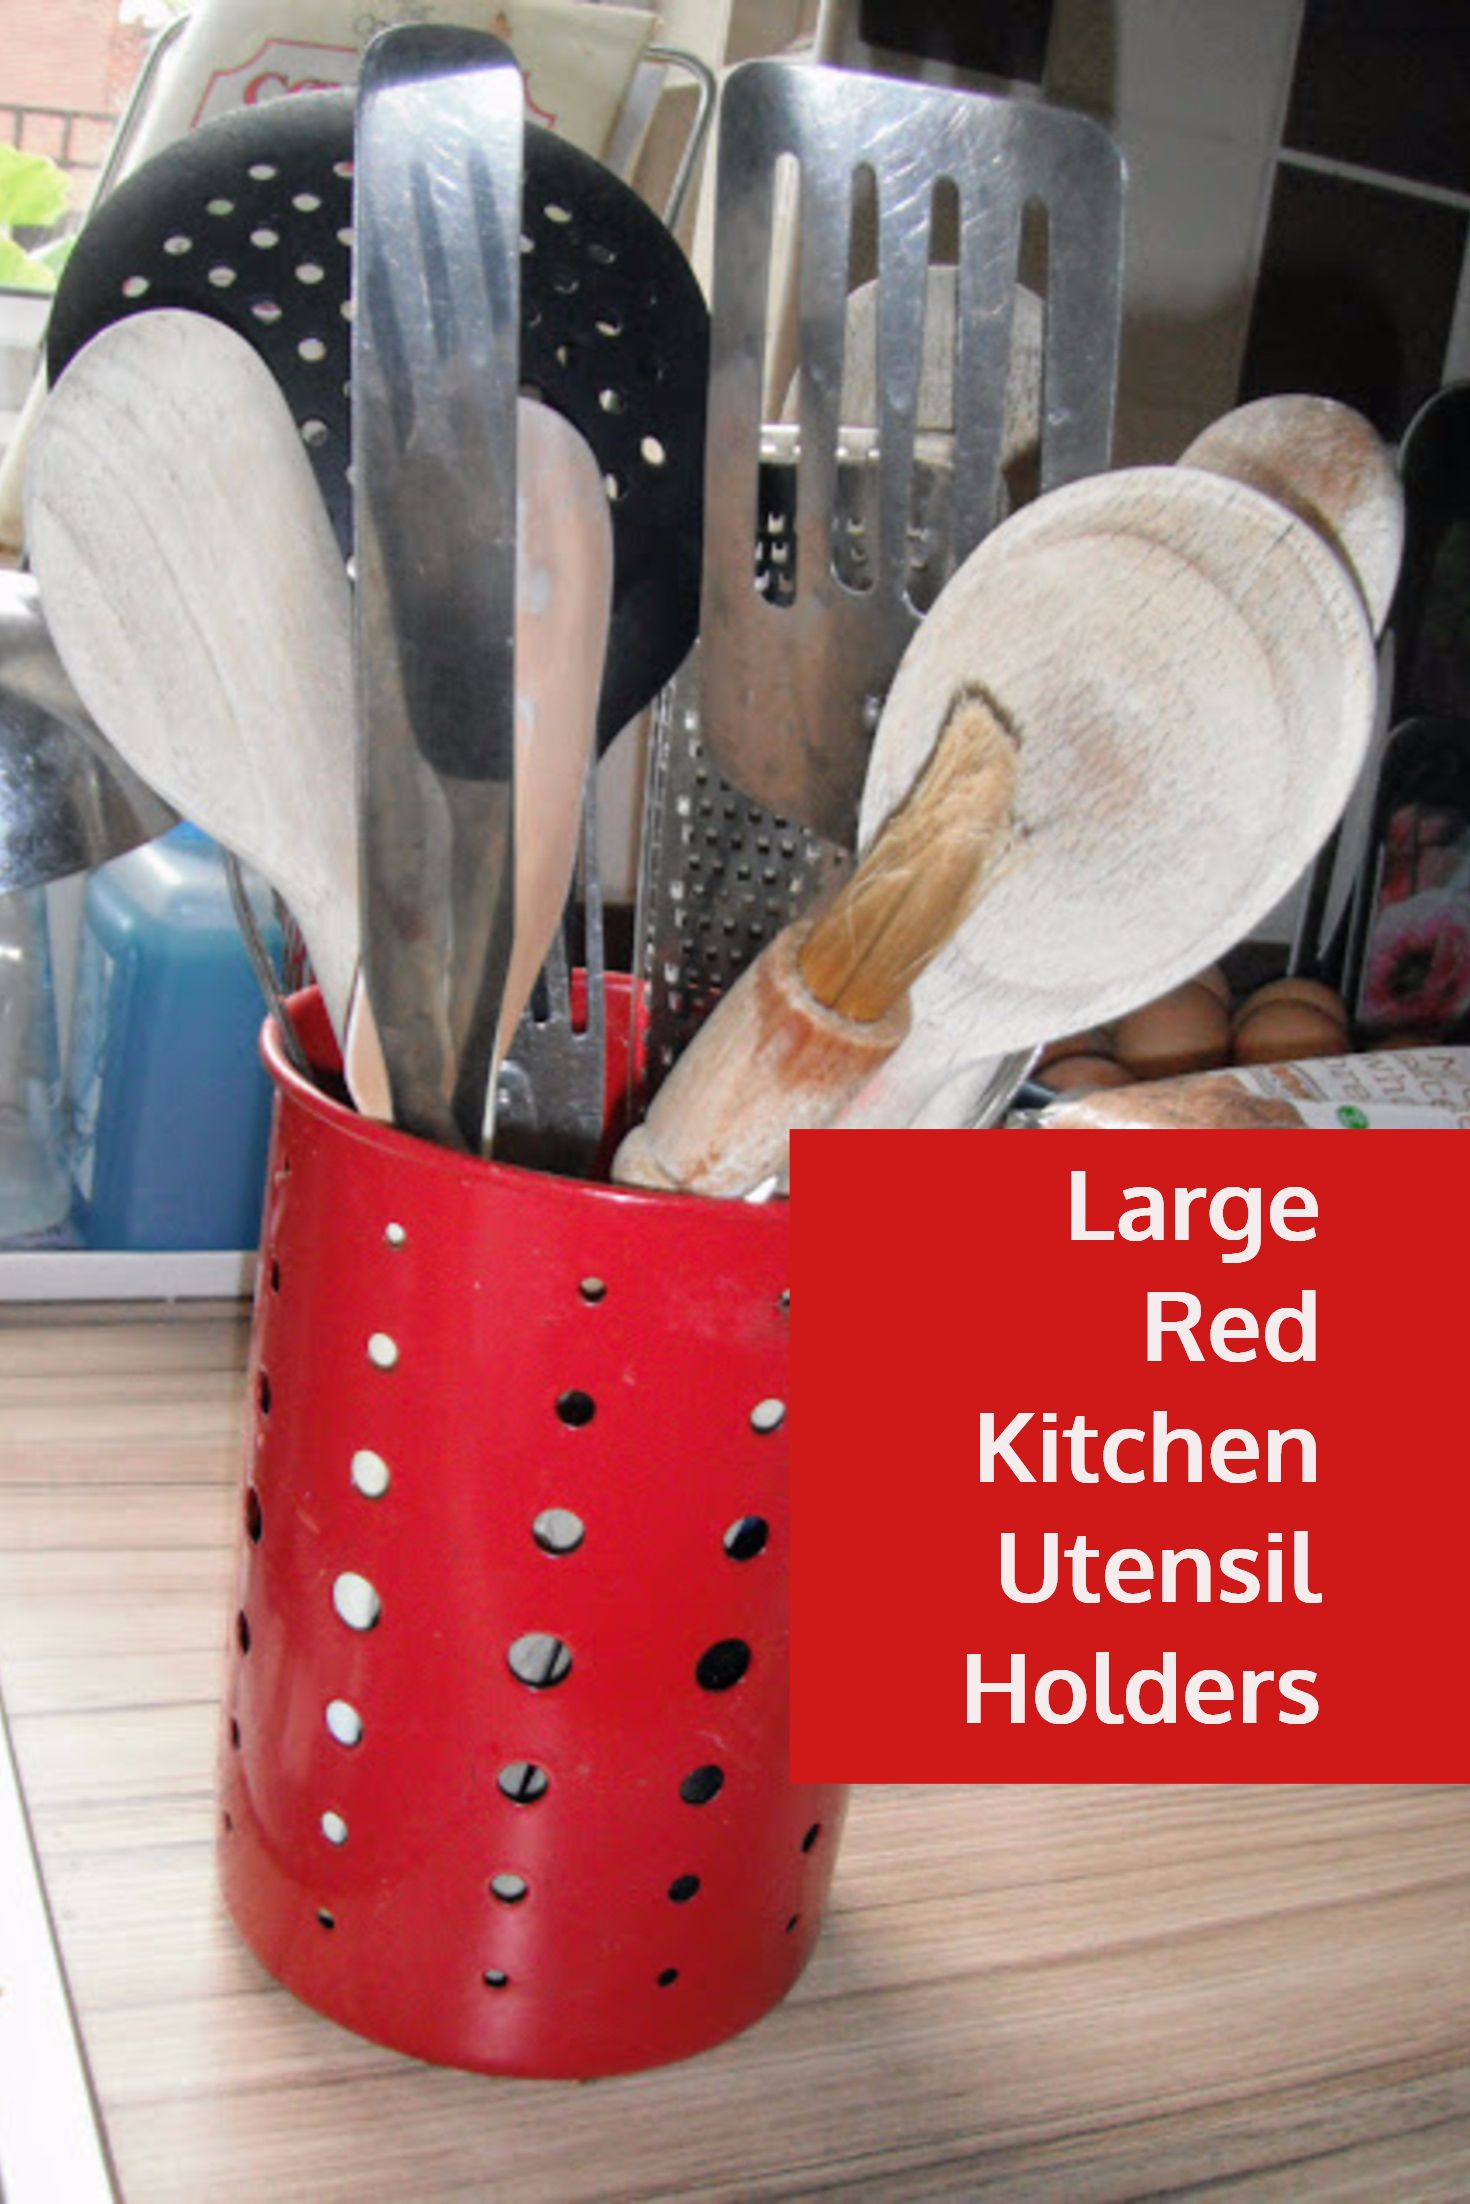 Large Red Kitchen Utensil Holders